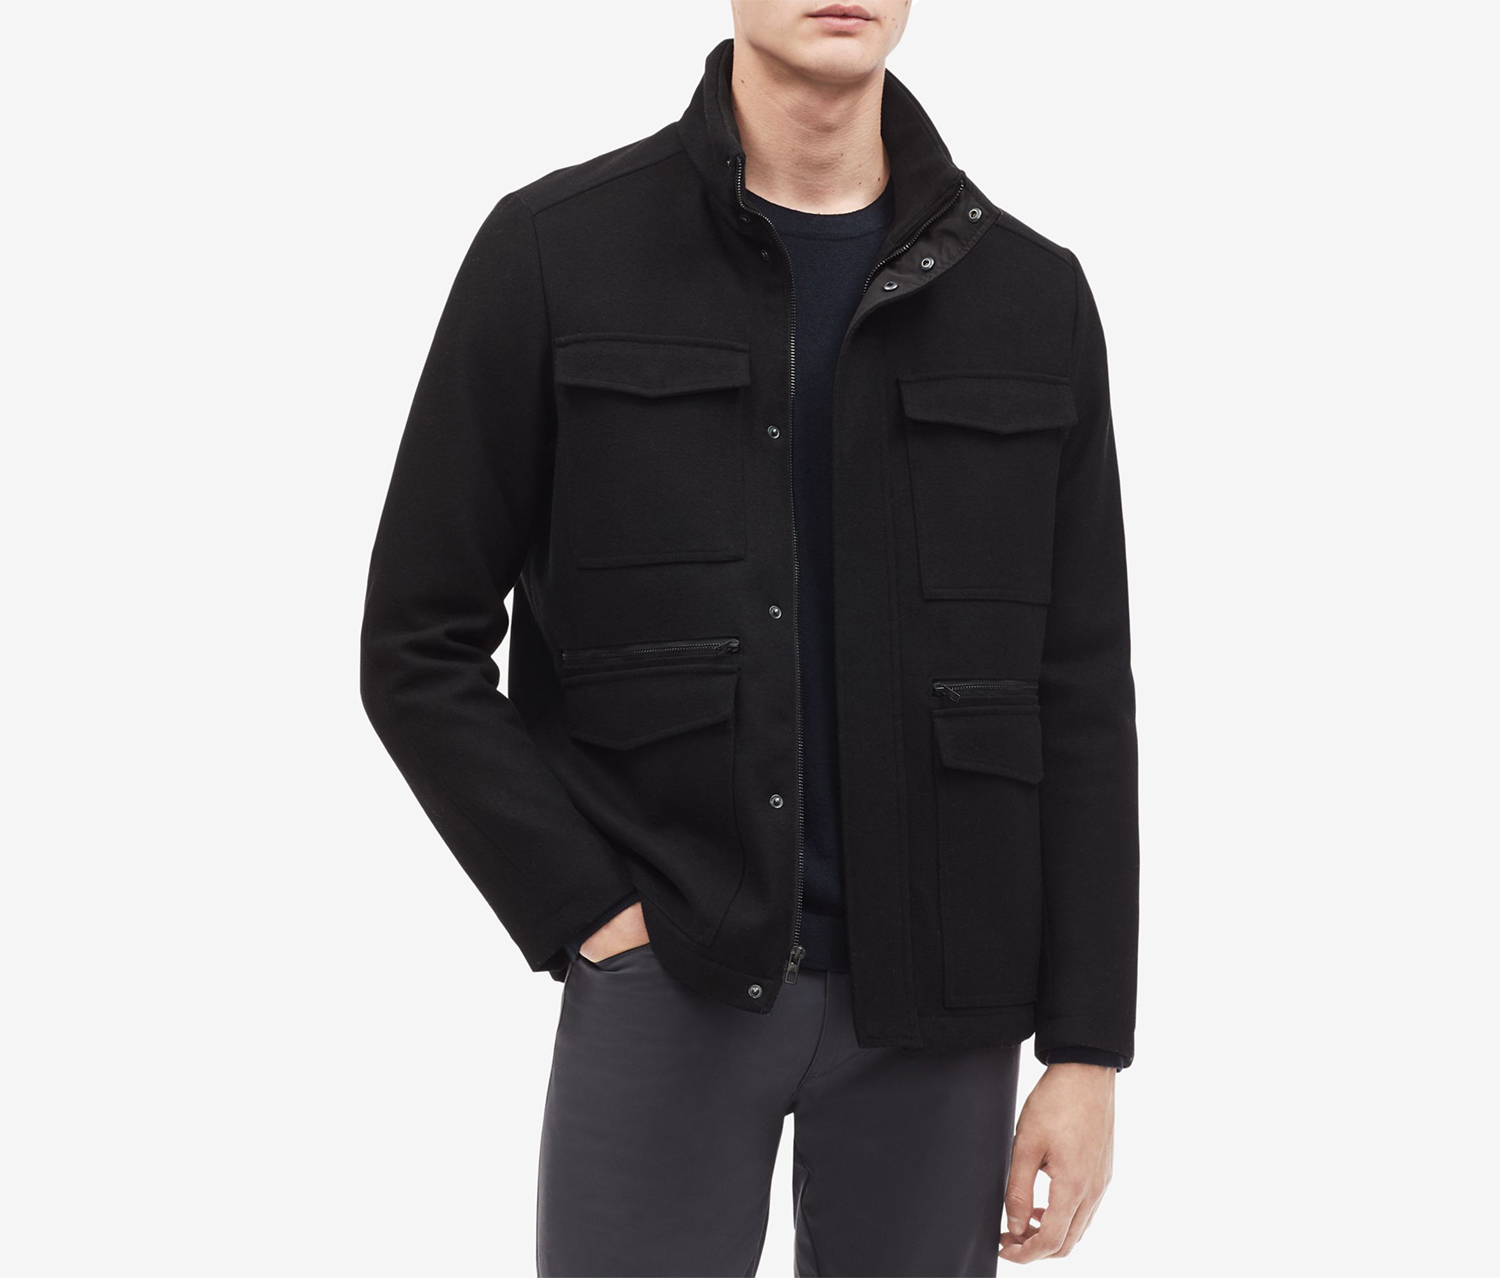 Men's Wool-Blend Jacket, Black